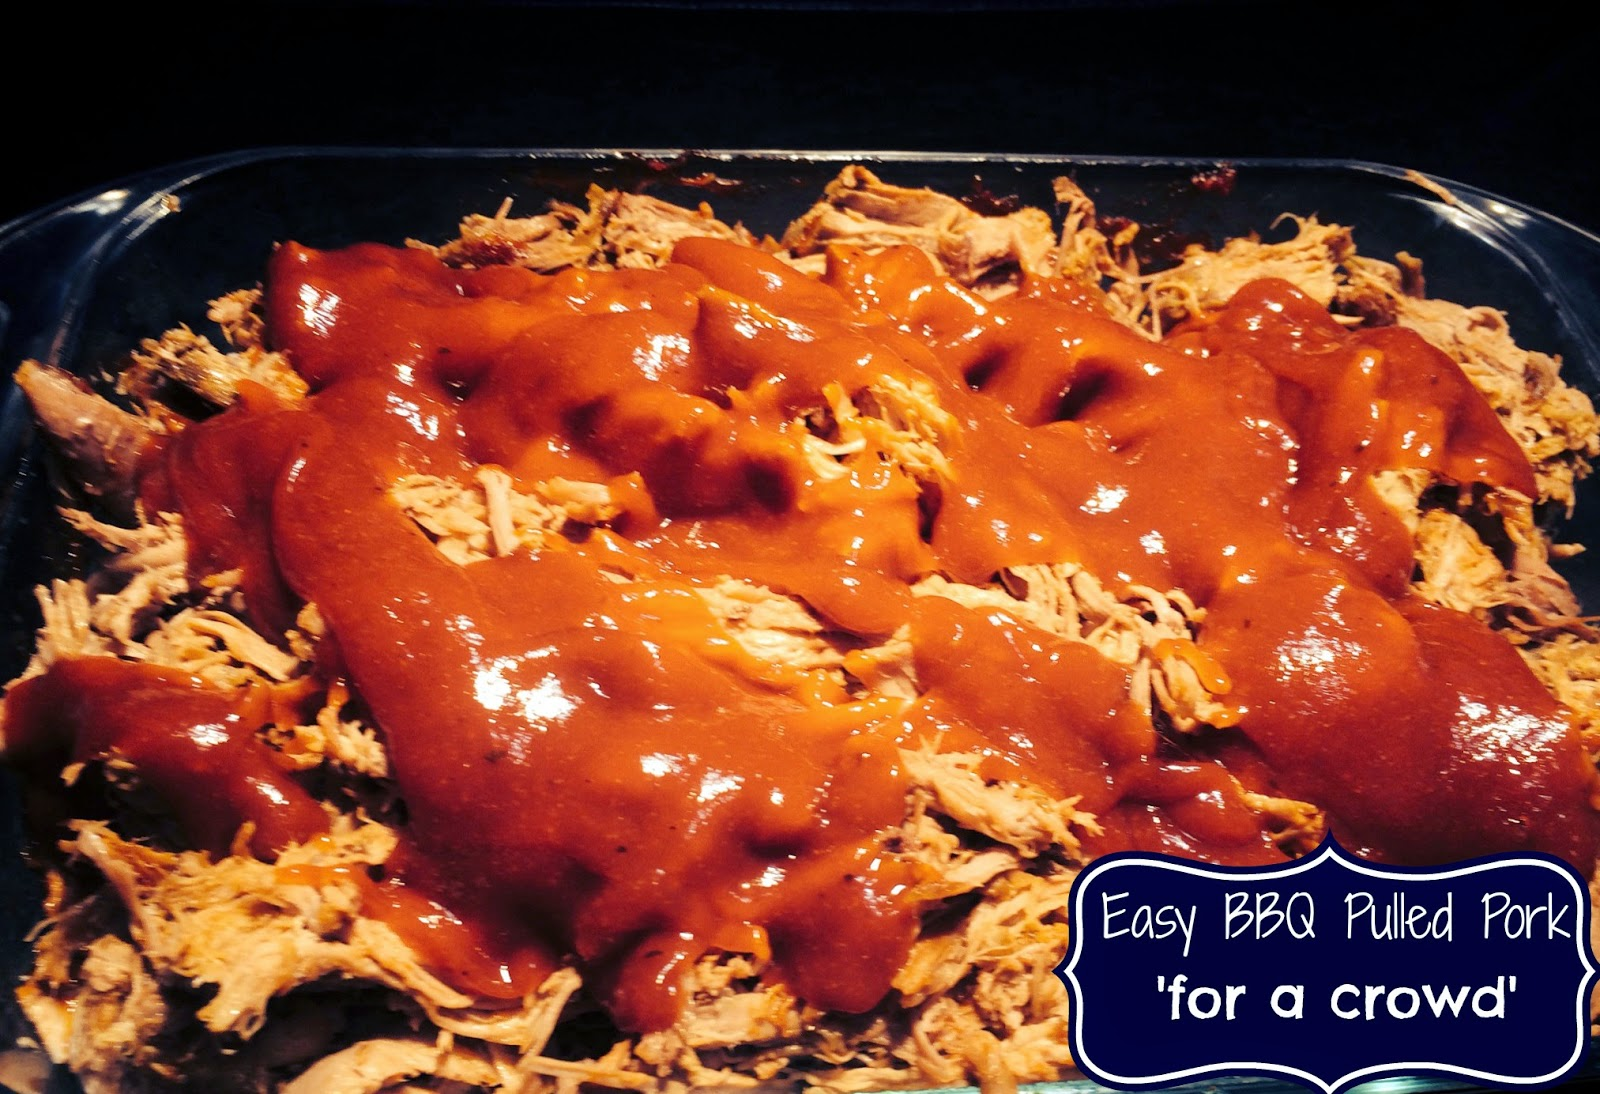 Easy bbq pulled pork for a crowd aunt bee s recipes